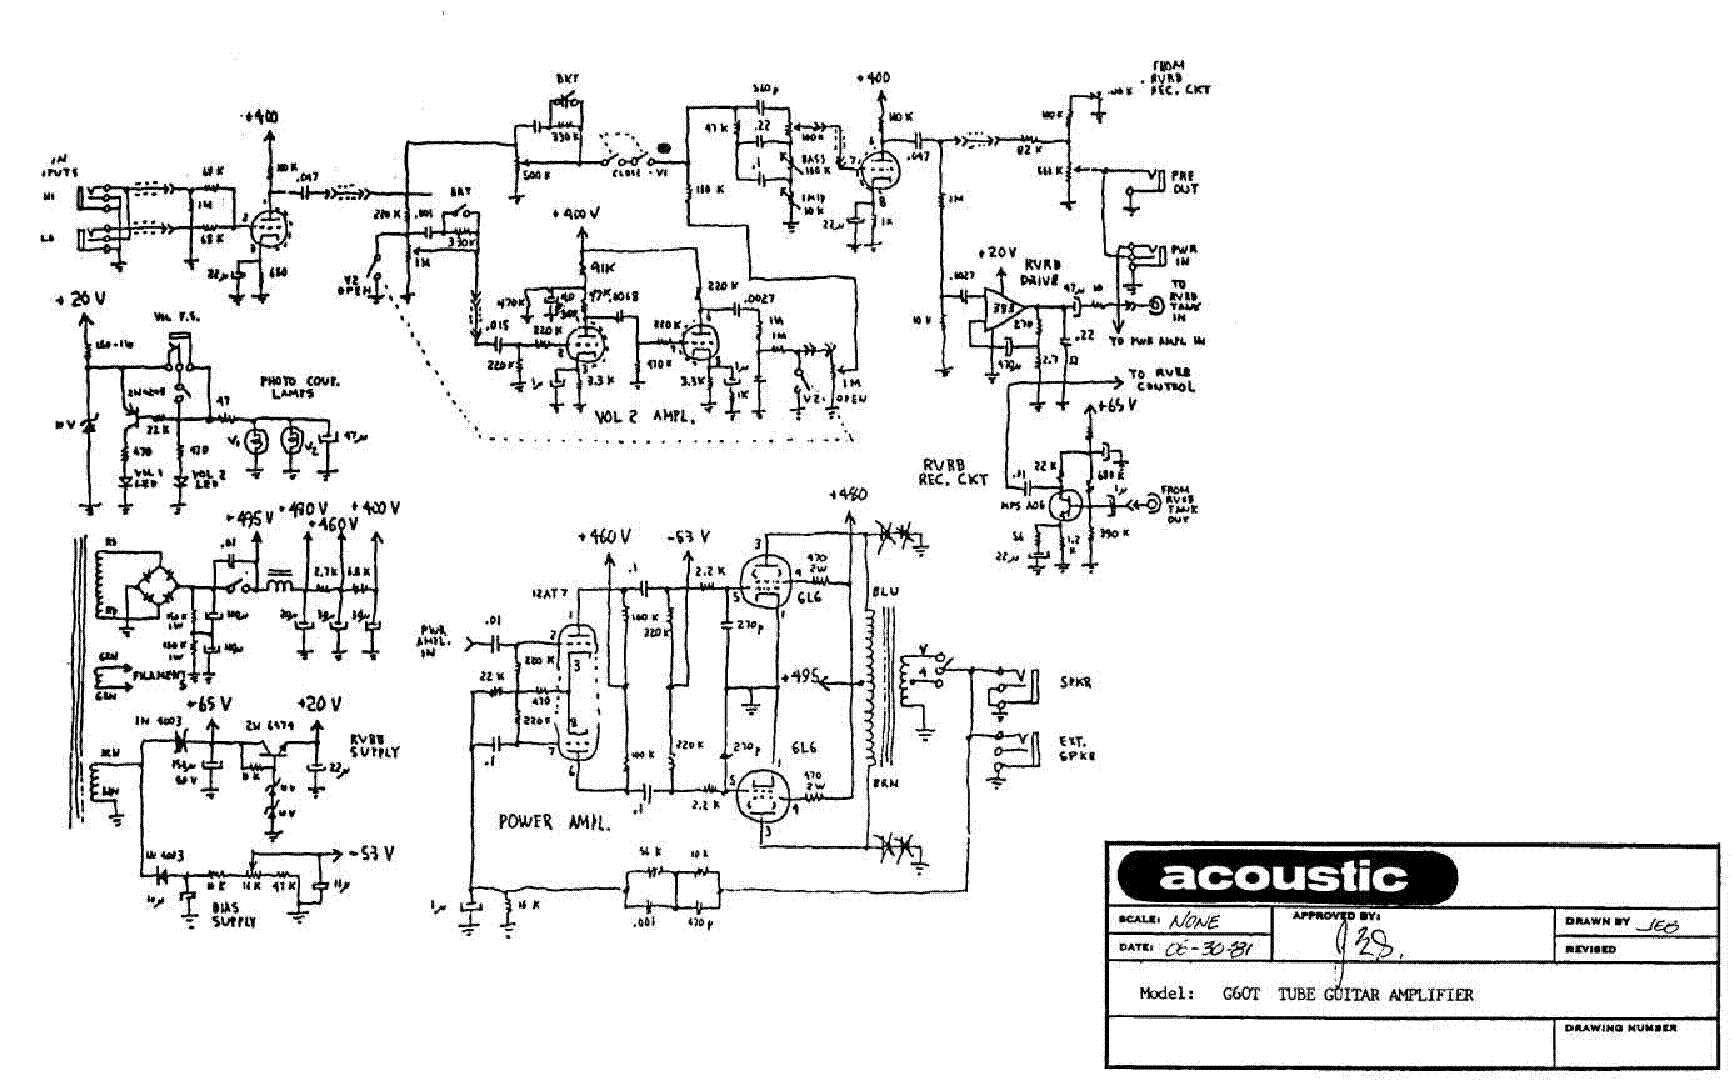 Dean Guitar Amplifier Schematics Wiring Diagram Will Be A Thing Series Circuit Schematic Get Free Image About Vox Diy Stereo Tube